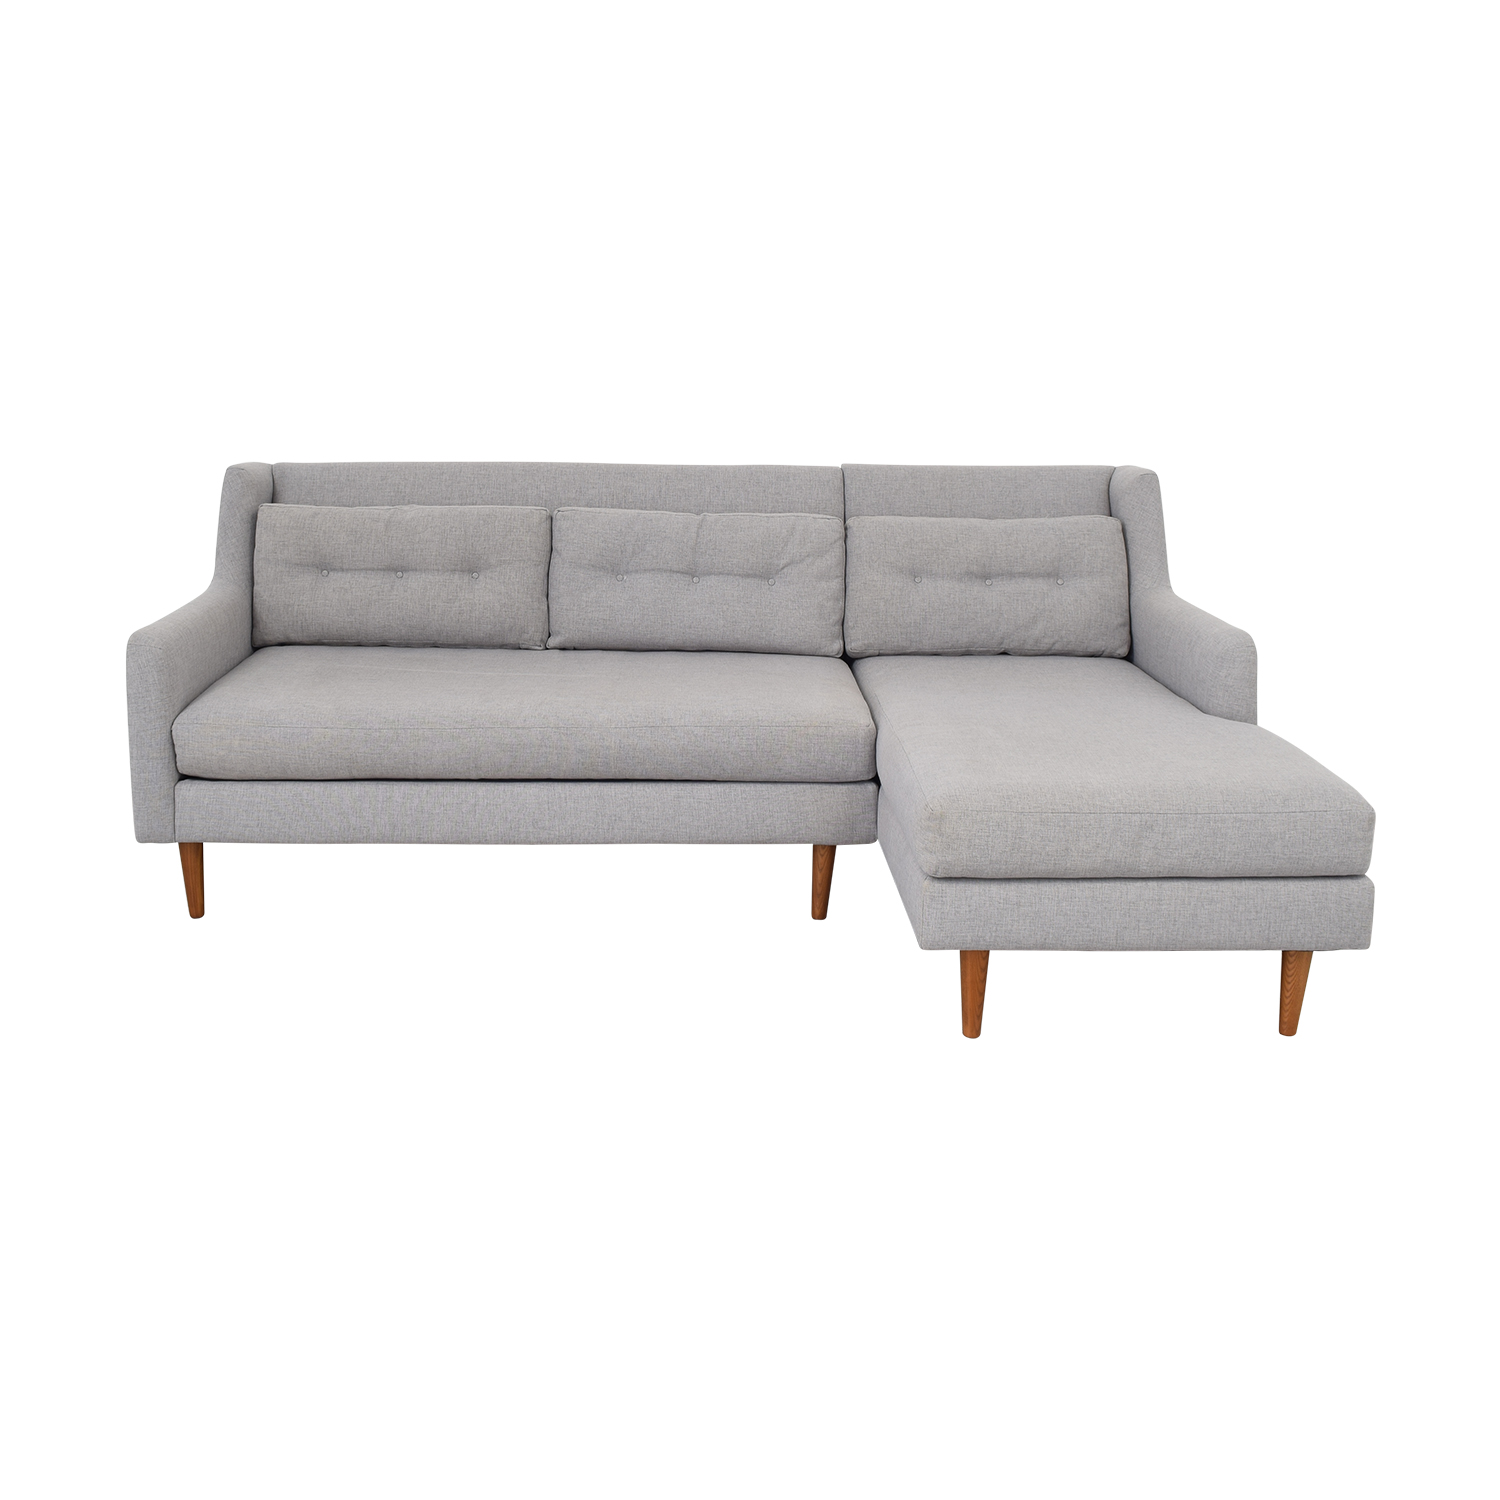 West Elm West Elm Crosby 2-Piece Mid-Century Sectional nj